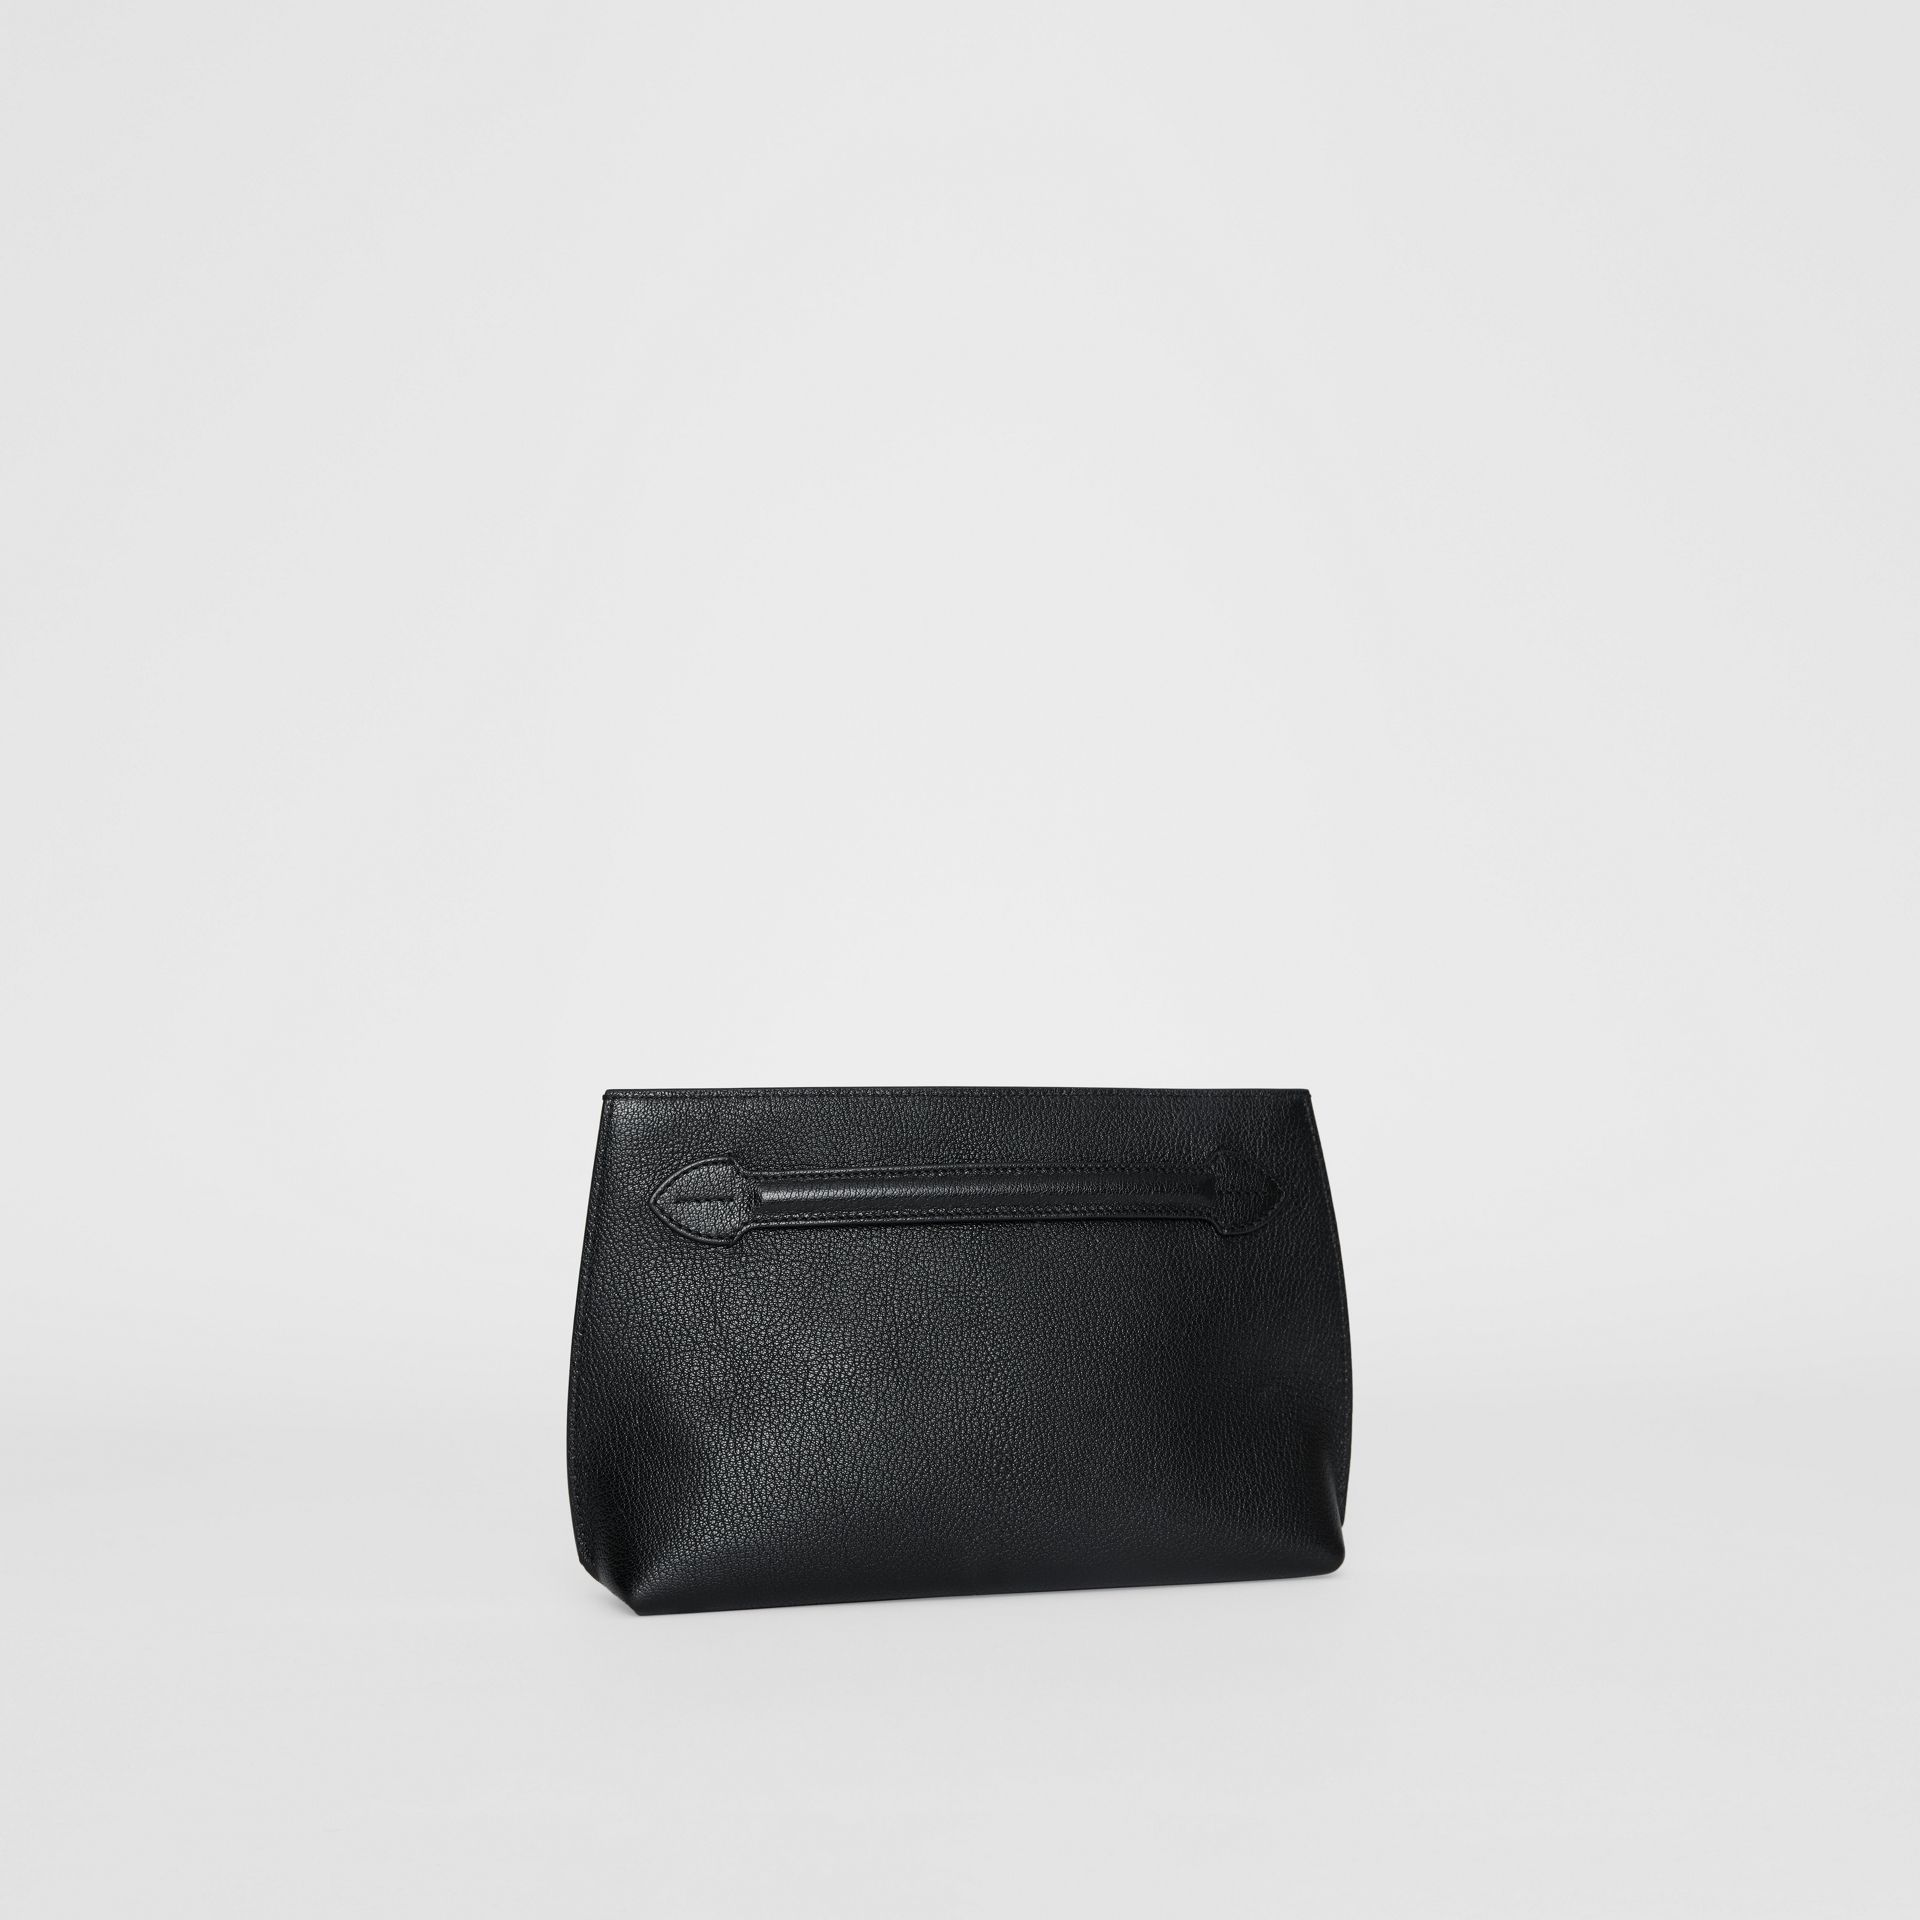 Grainy Leather Wristlet Clutch in Black - Women | Burberry - gallery image 6